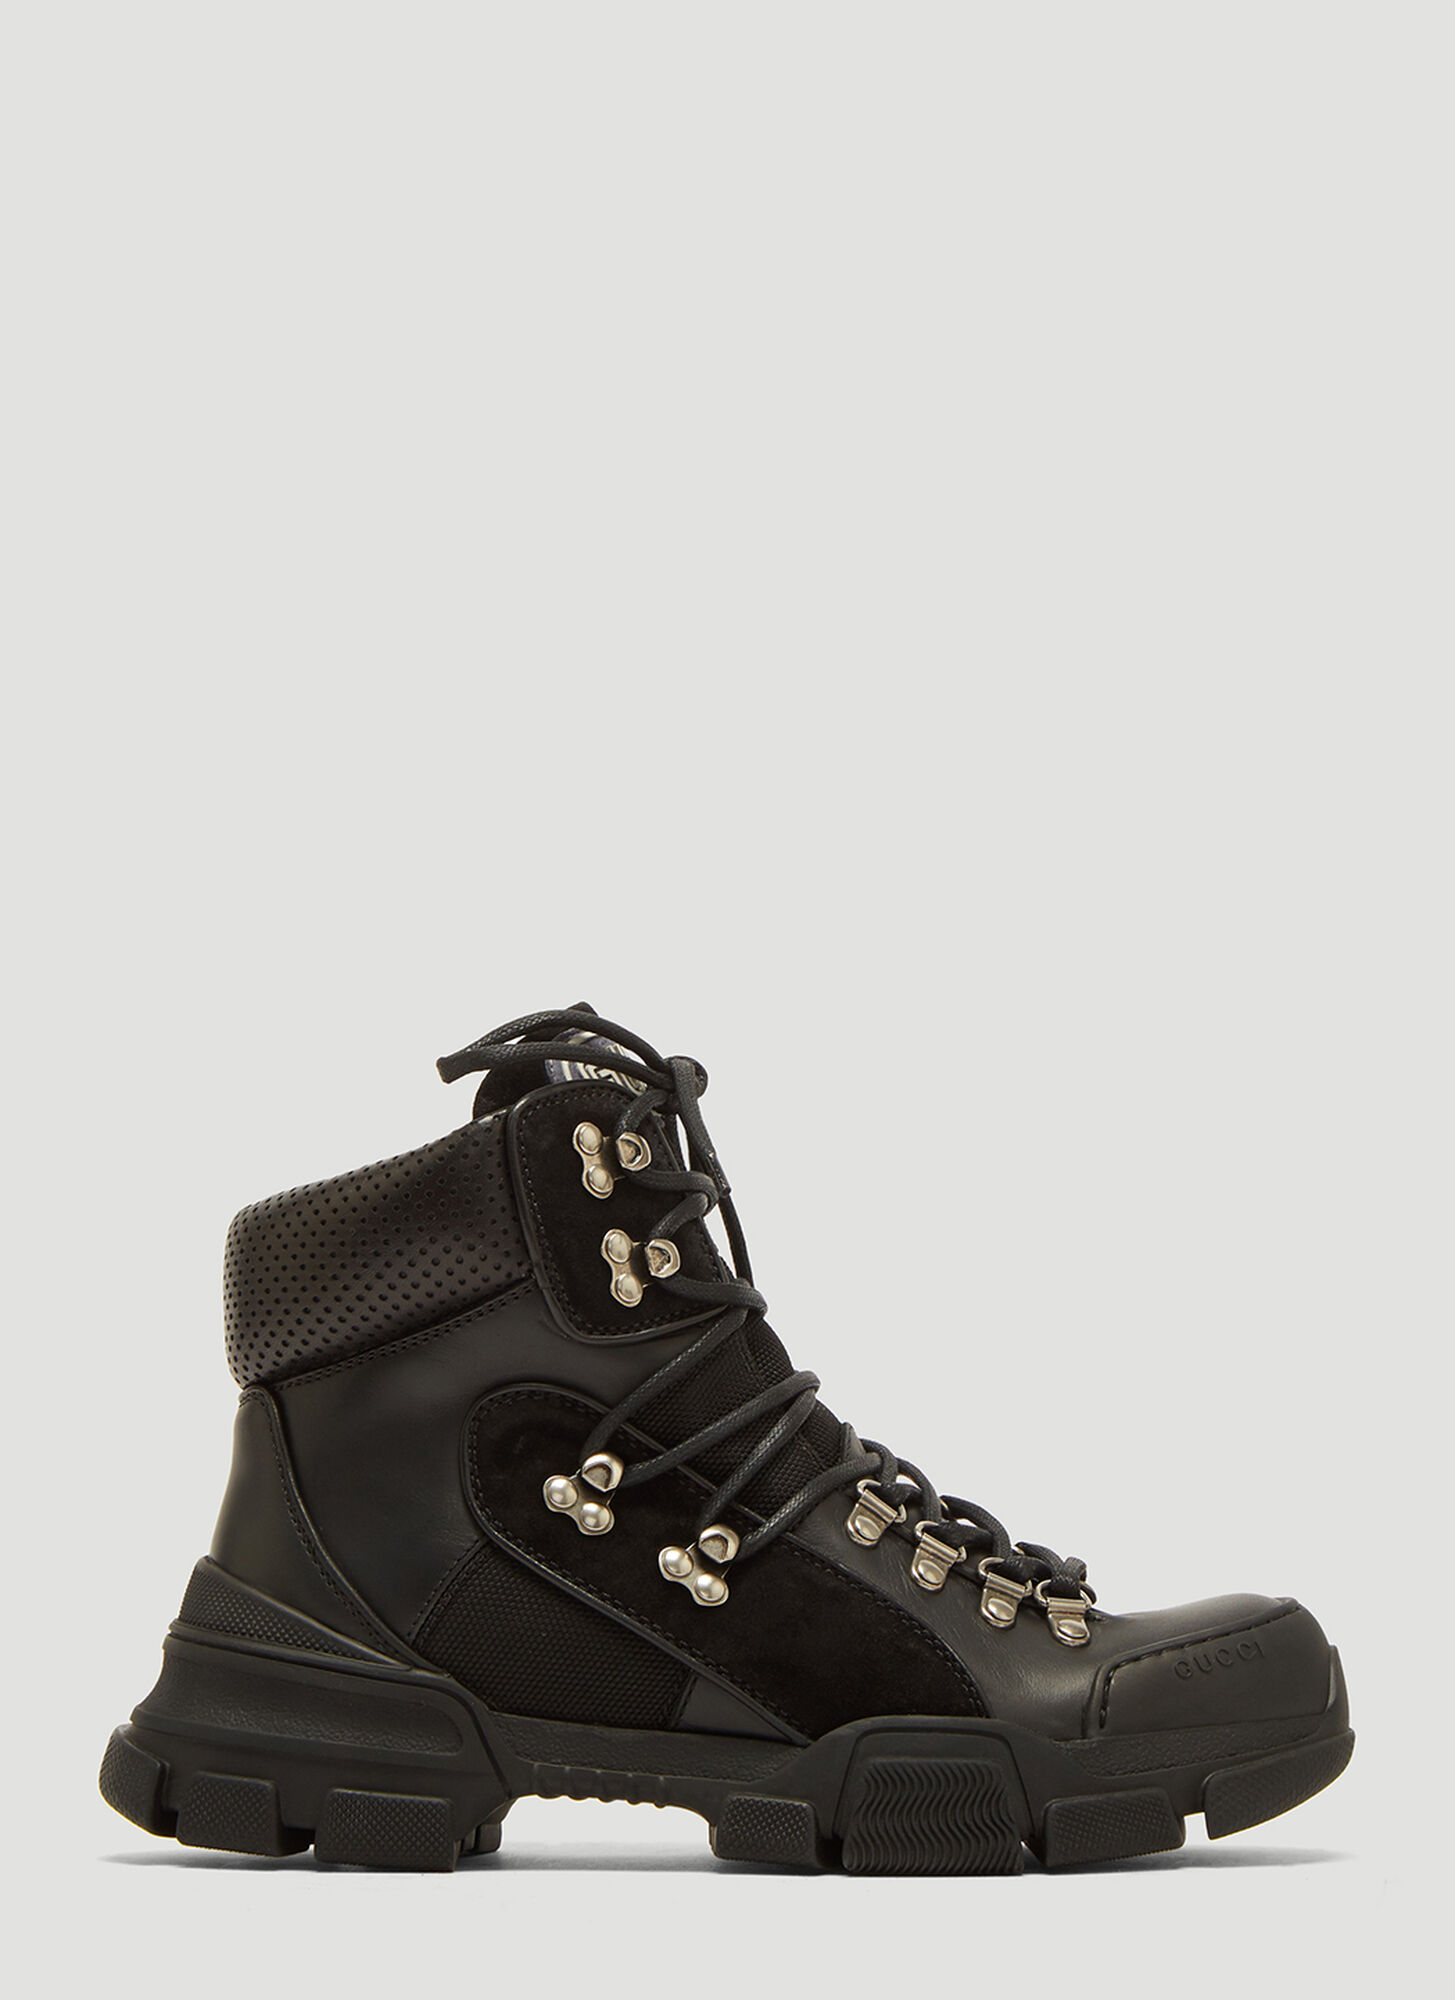 Photo of Gucci Flashtrek High-top Sneakers in Black - Gucci Sneakers